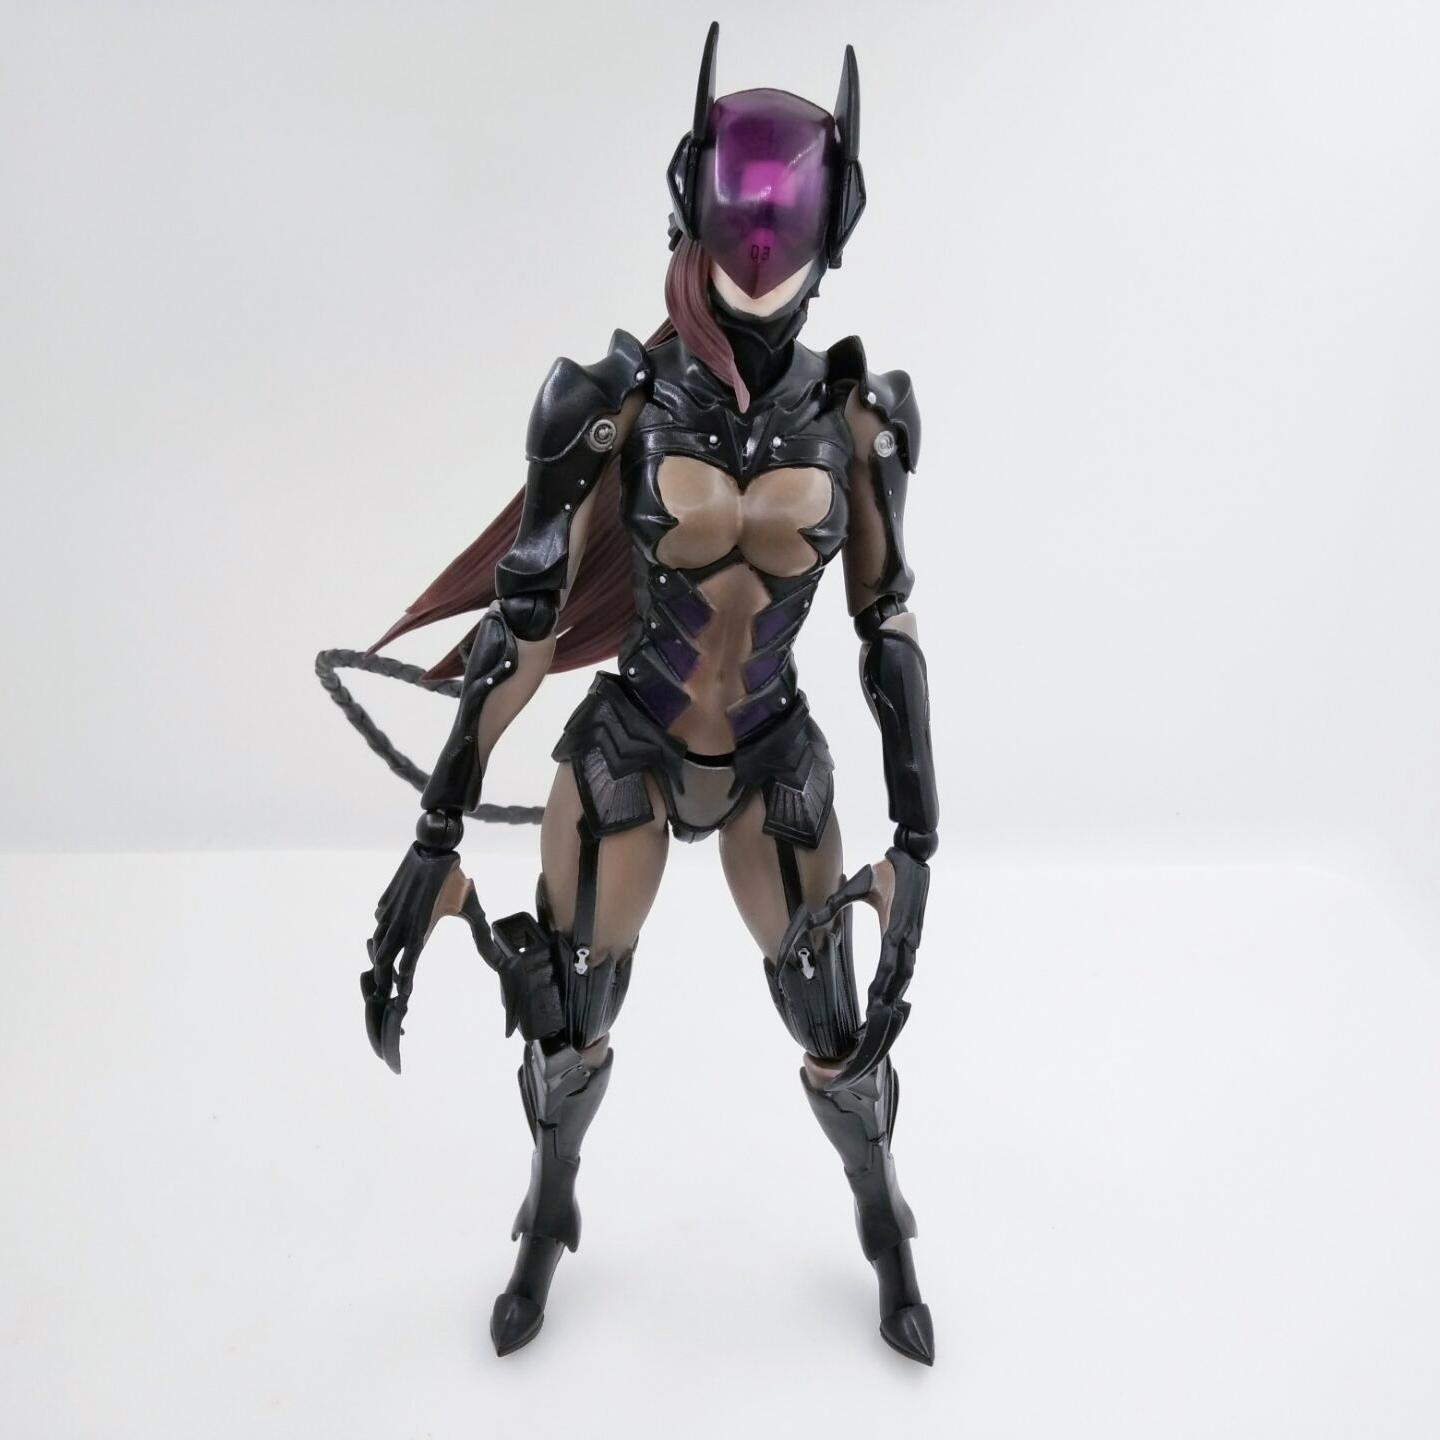 28cm Play arts Kai Final Fantasy DC catwoman Arkham Knight anime action toy figures PVC Model Collection original box